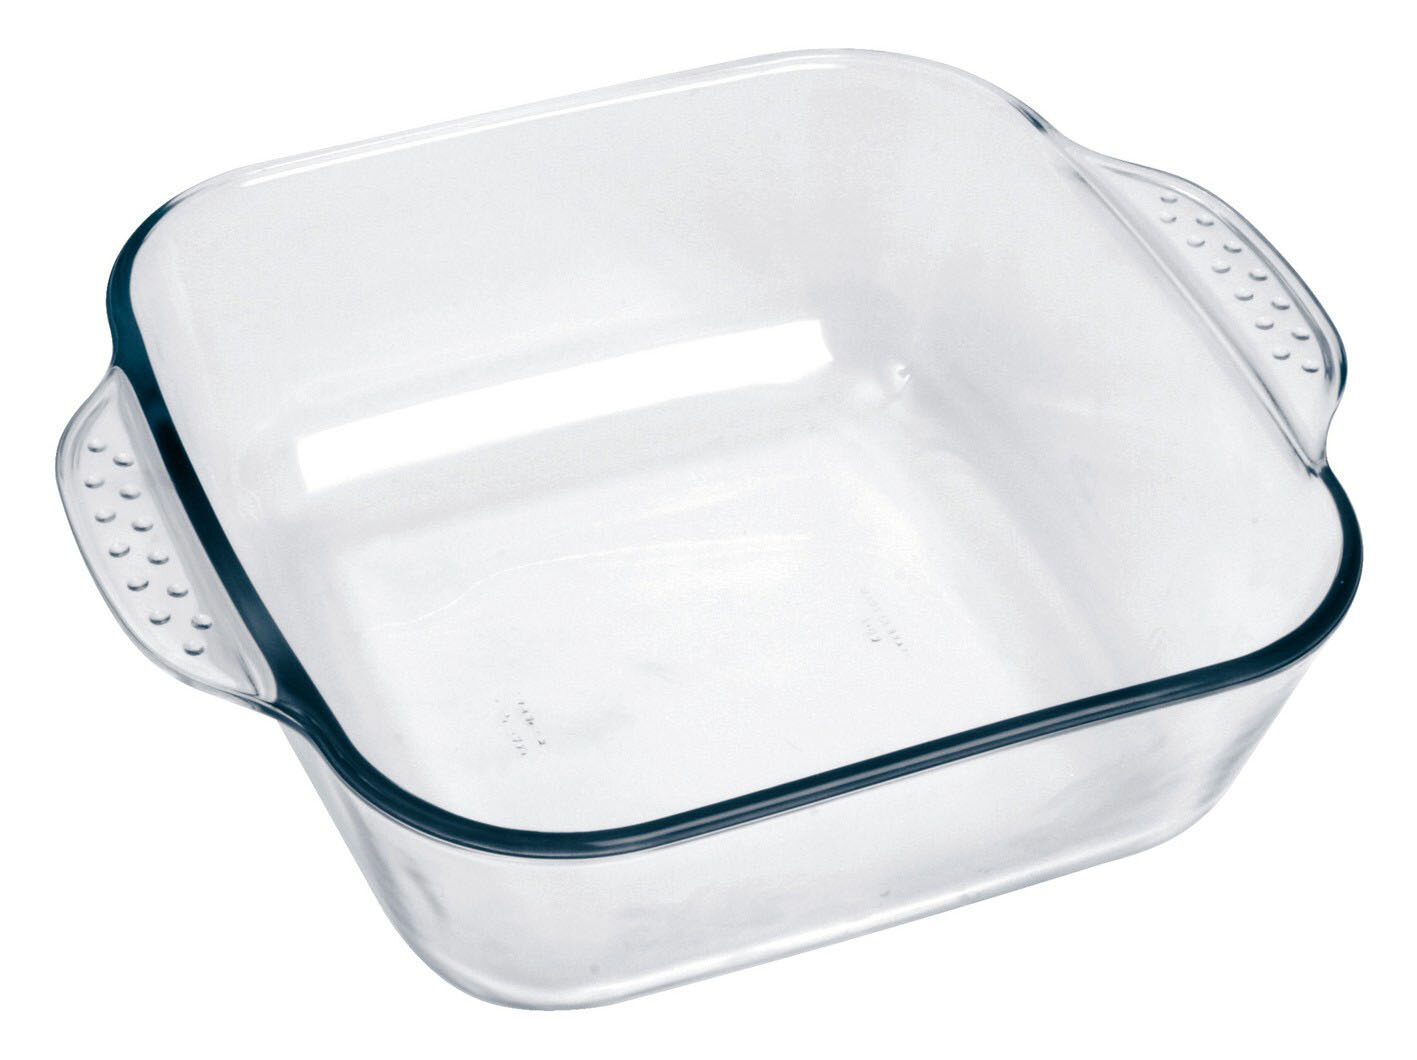 Marinex Square Casserole Wayfair